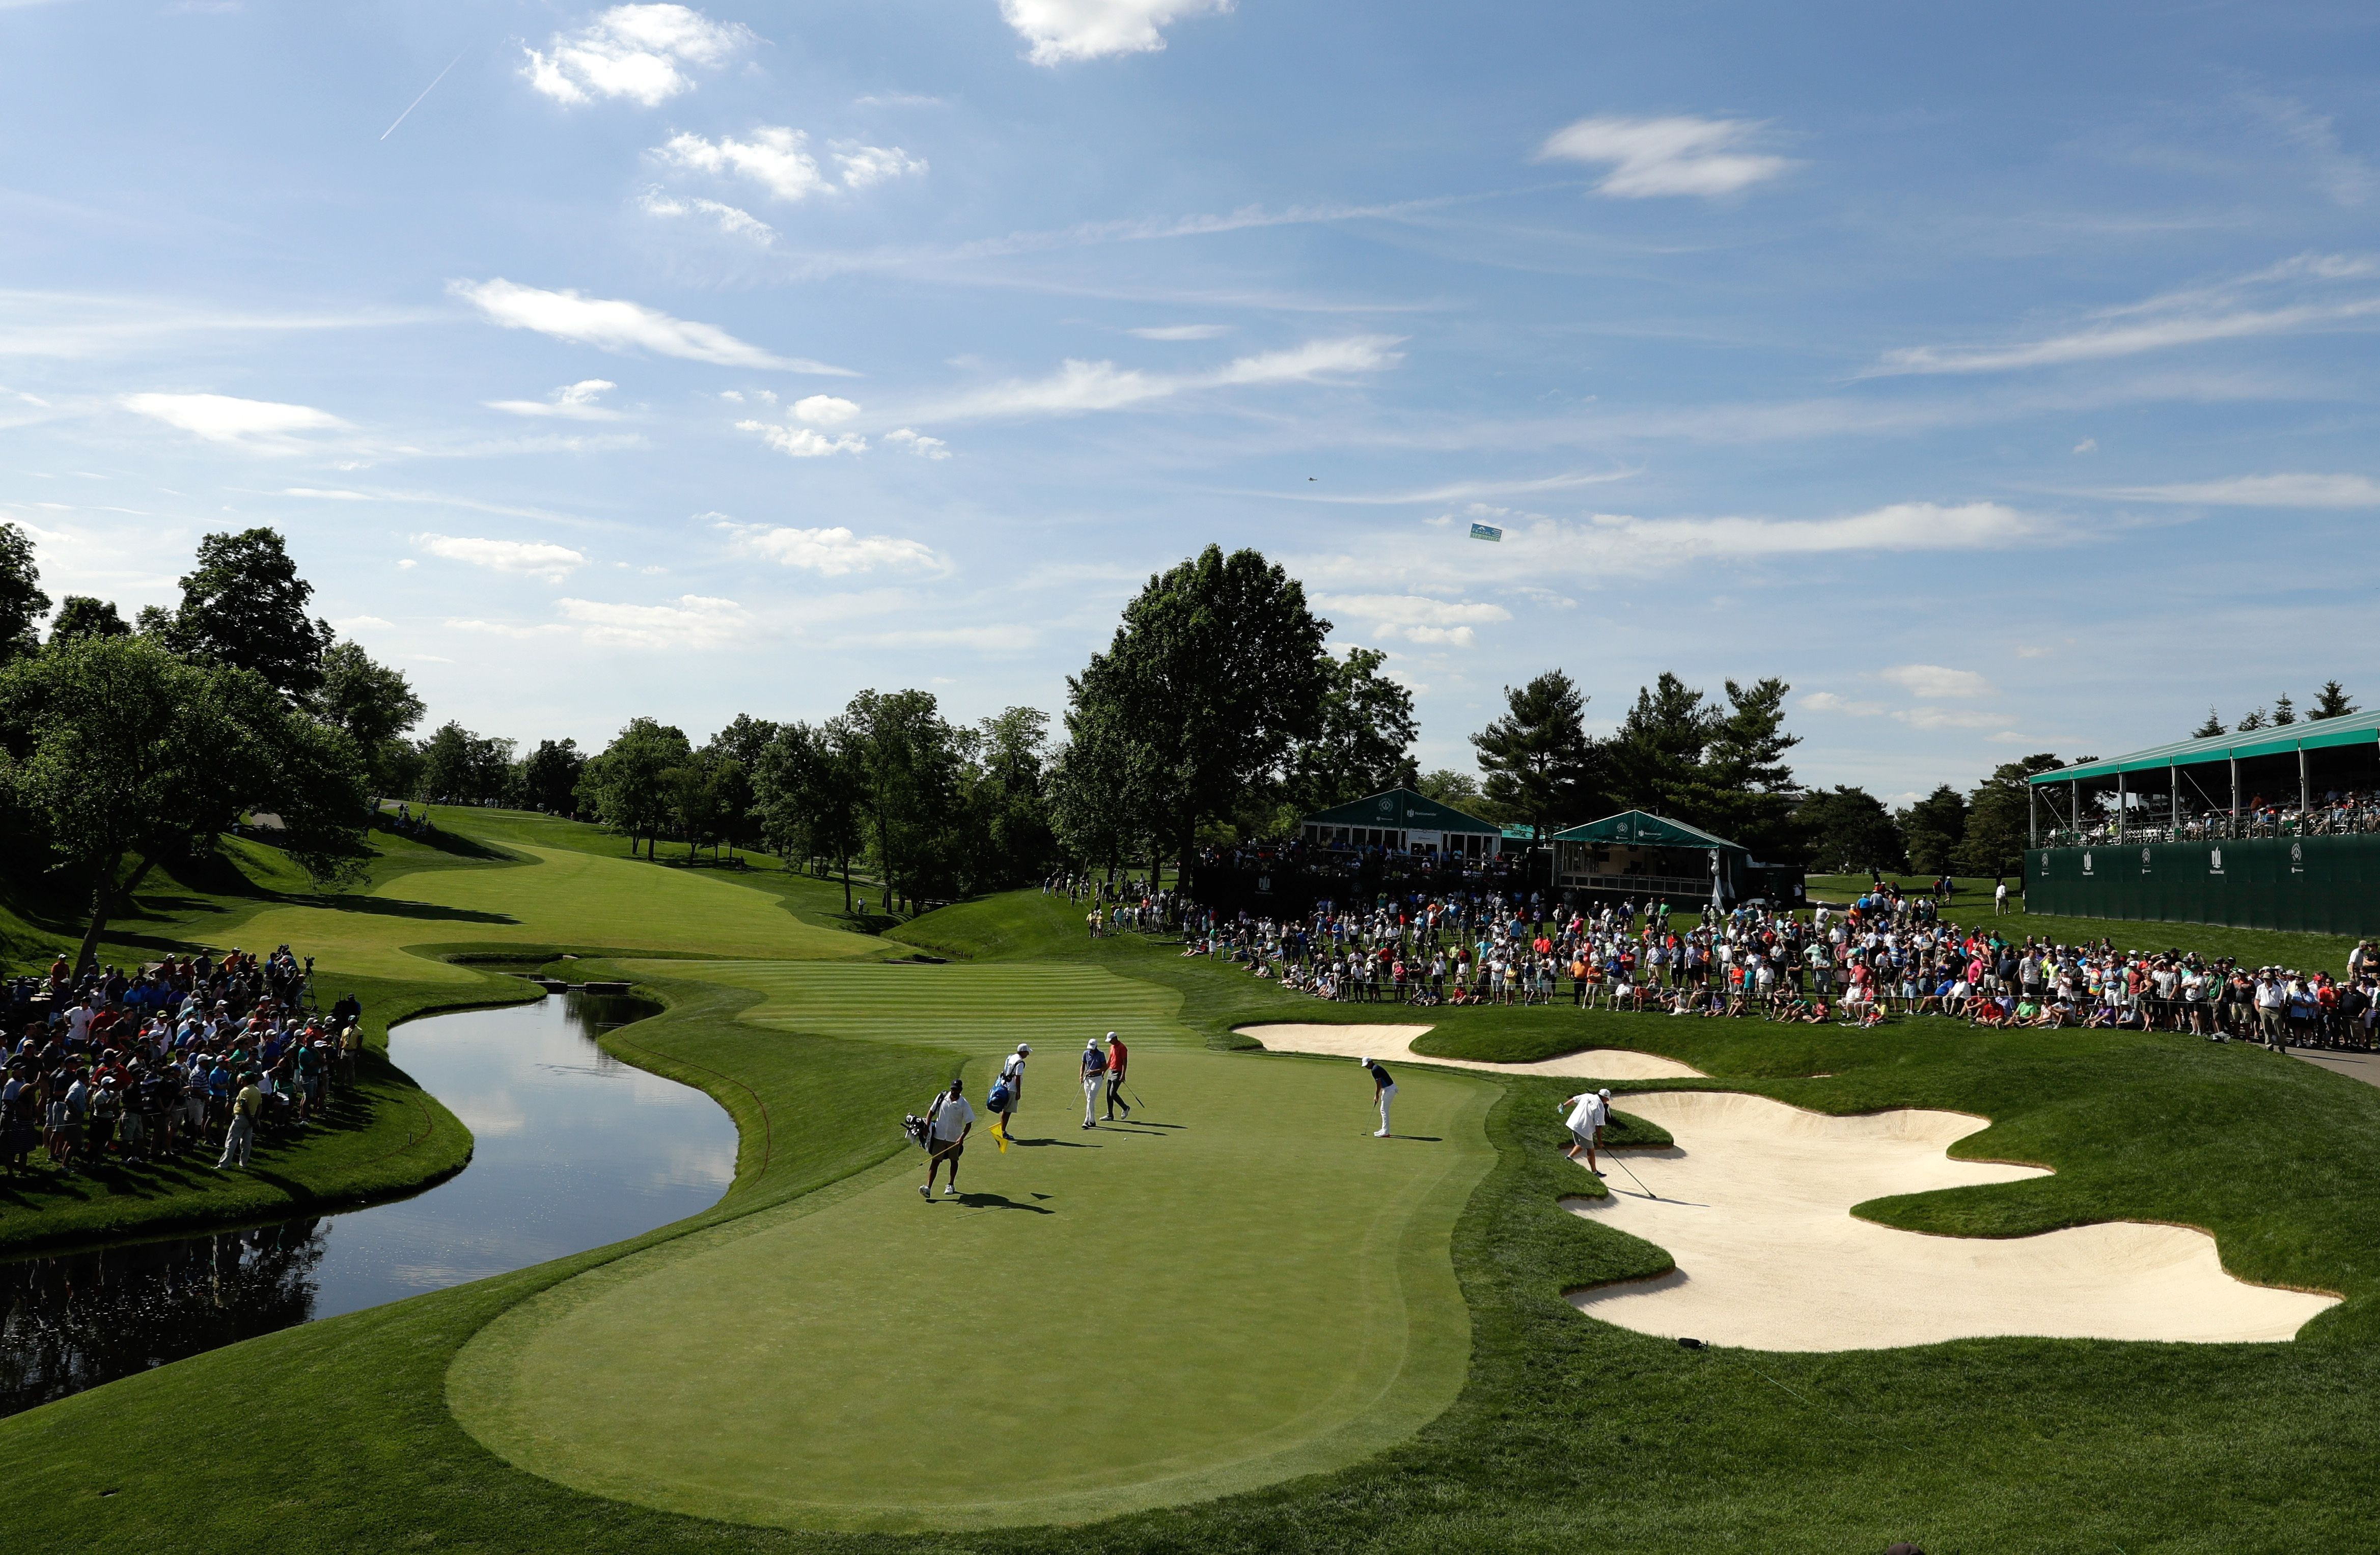 General view of the 14th hole of Muirfield Village Golf Club